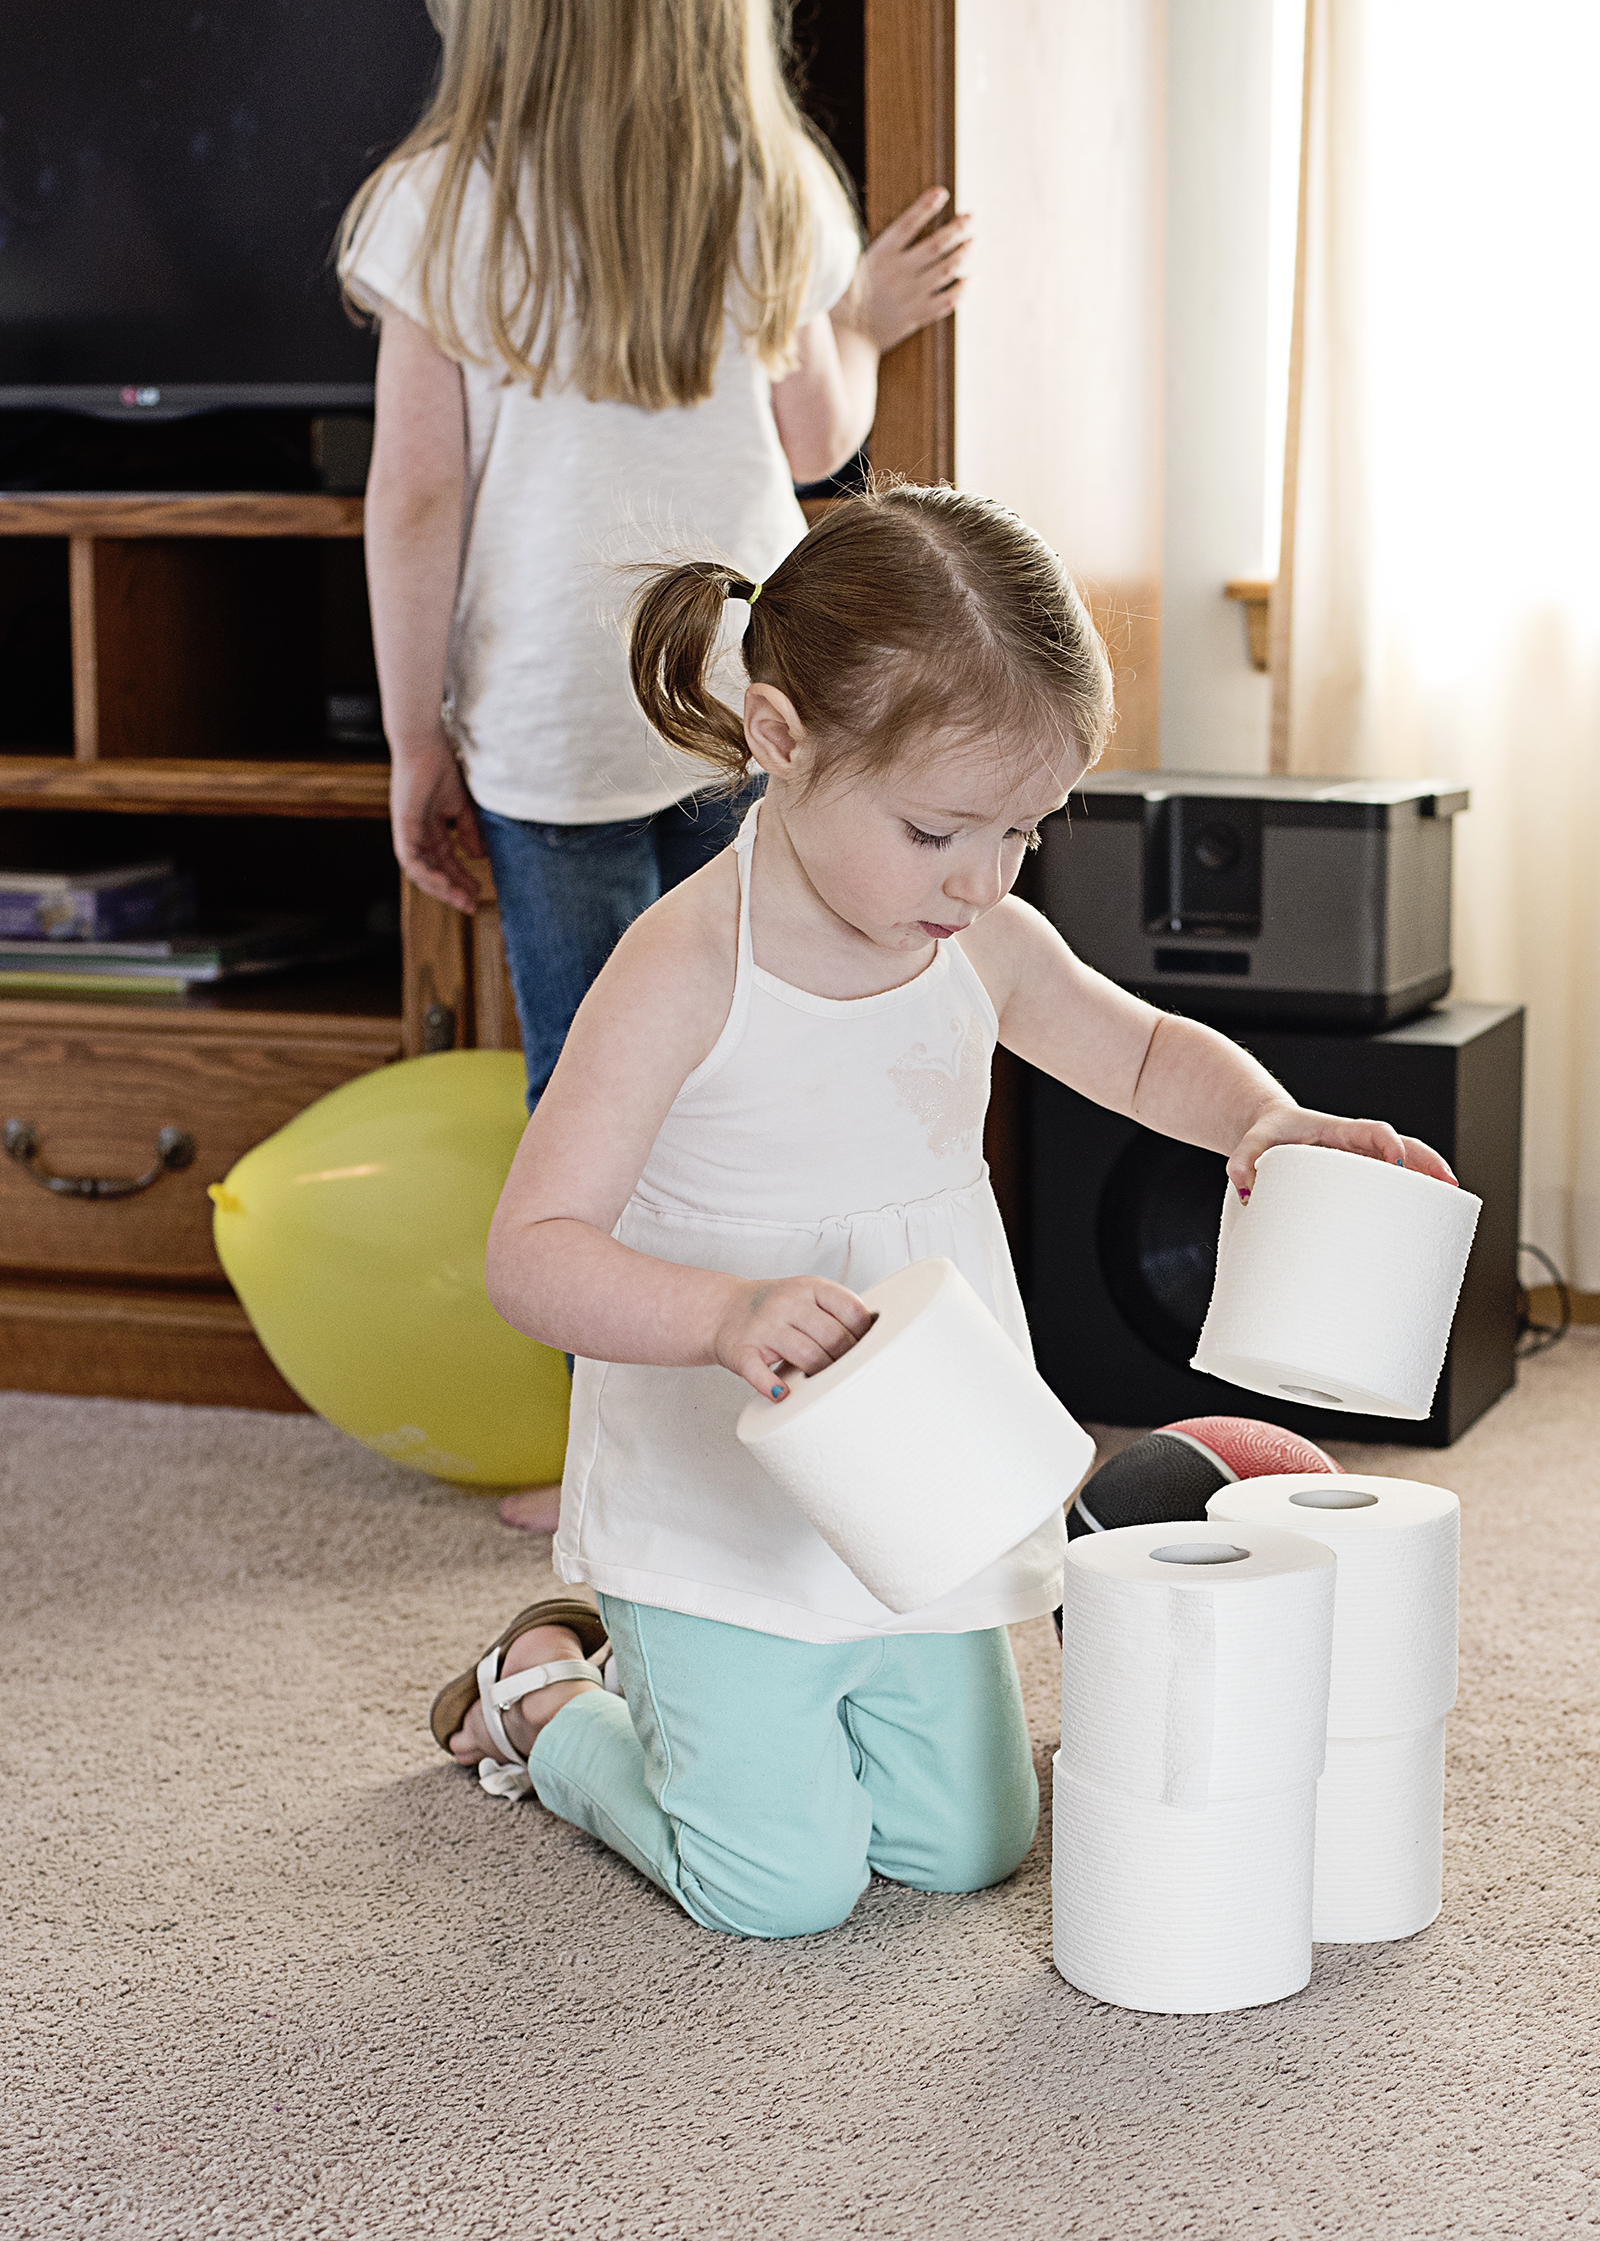 5 Tried and True Potty Training Tips from Moms